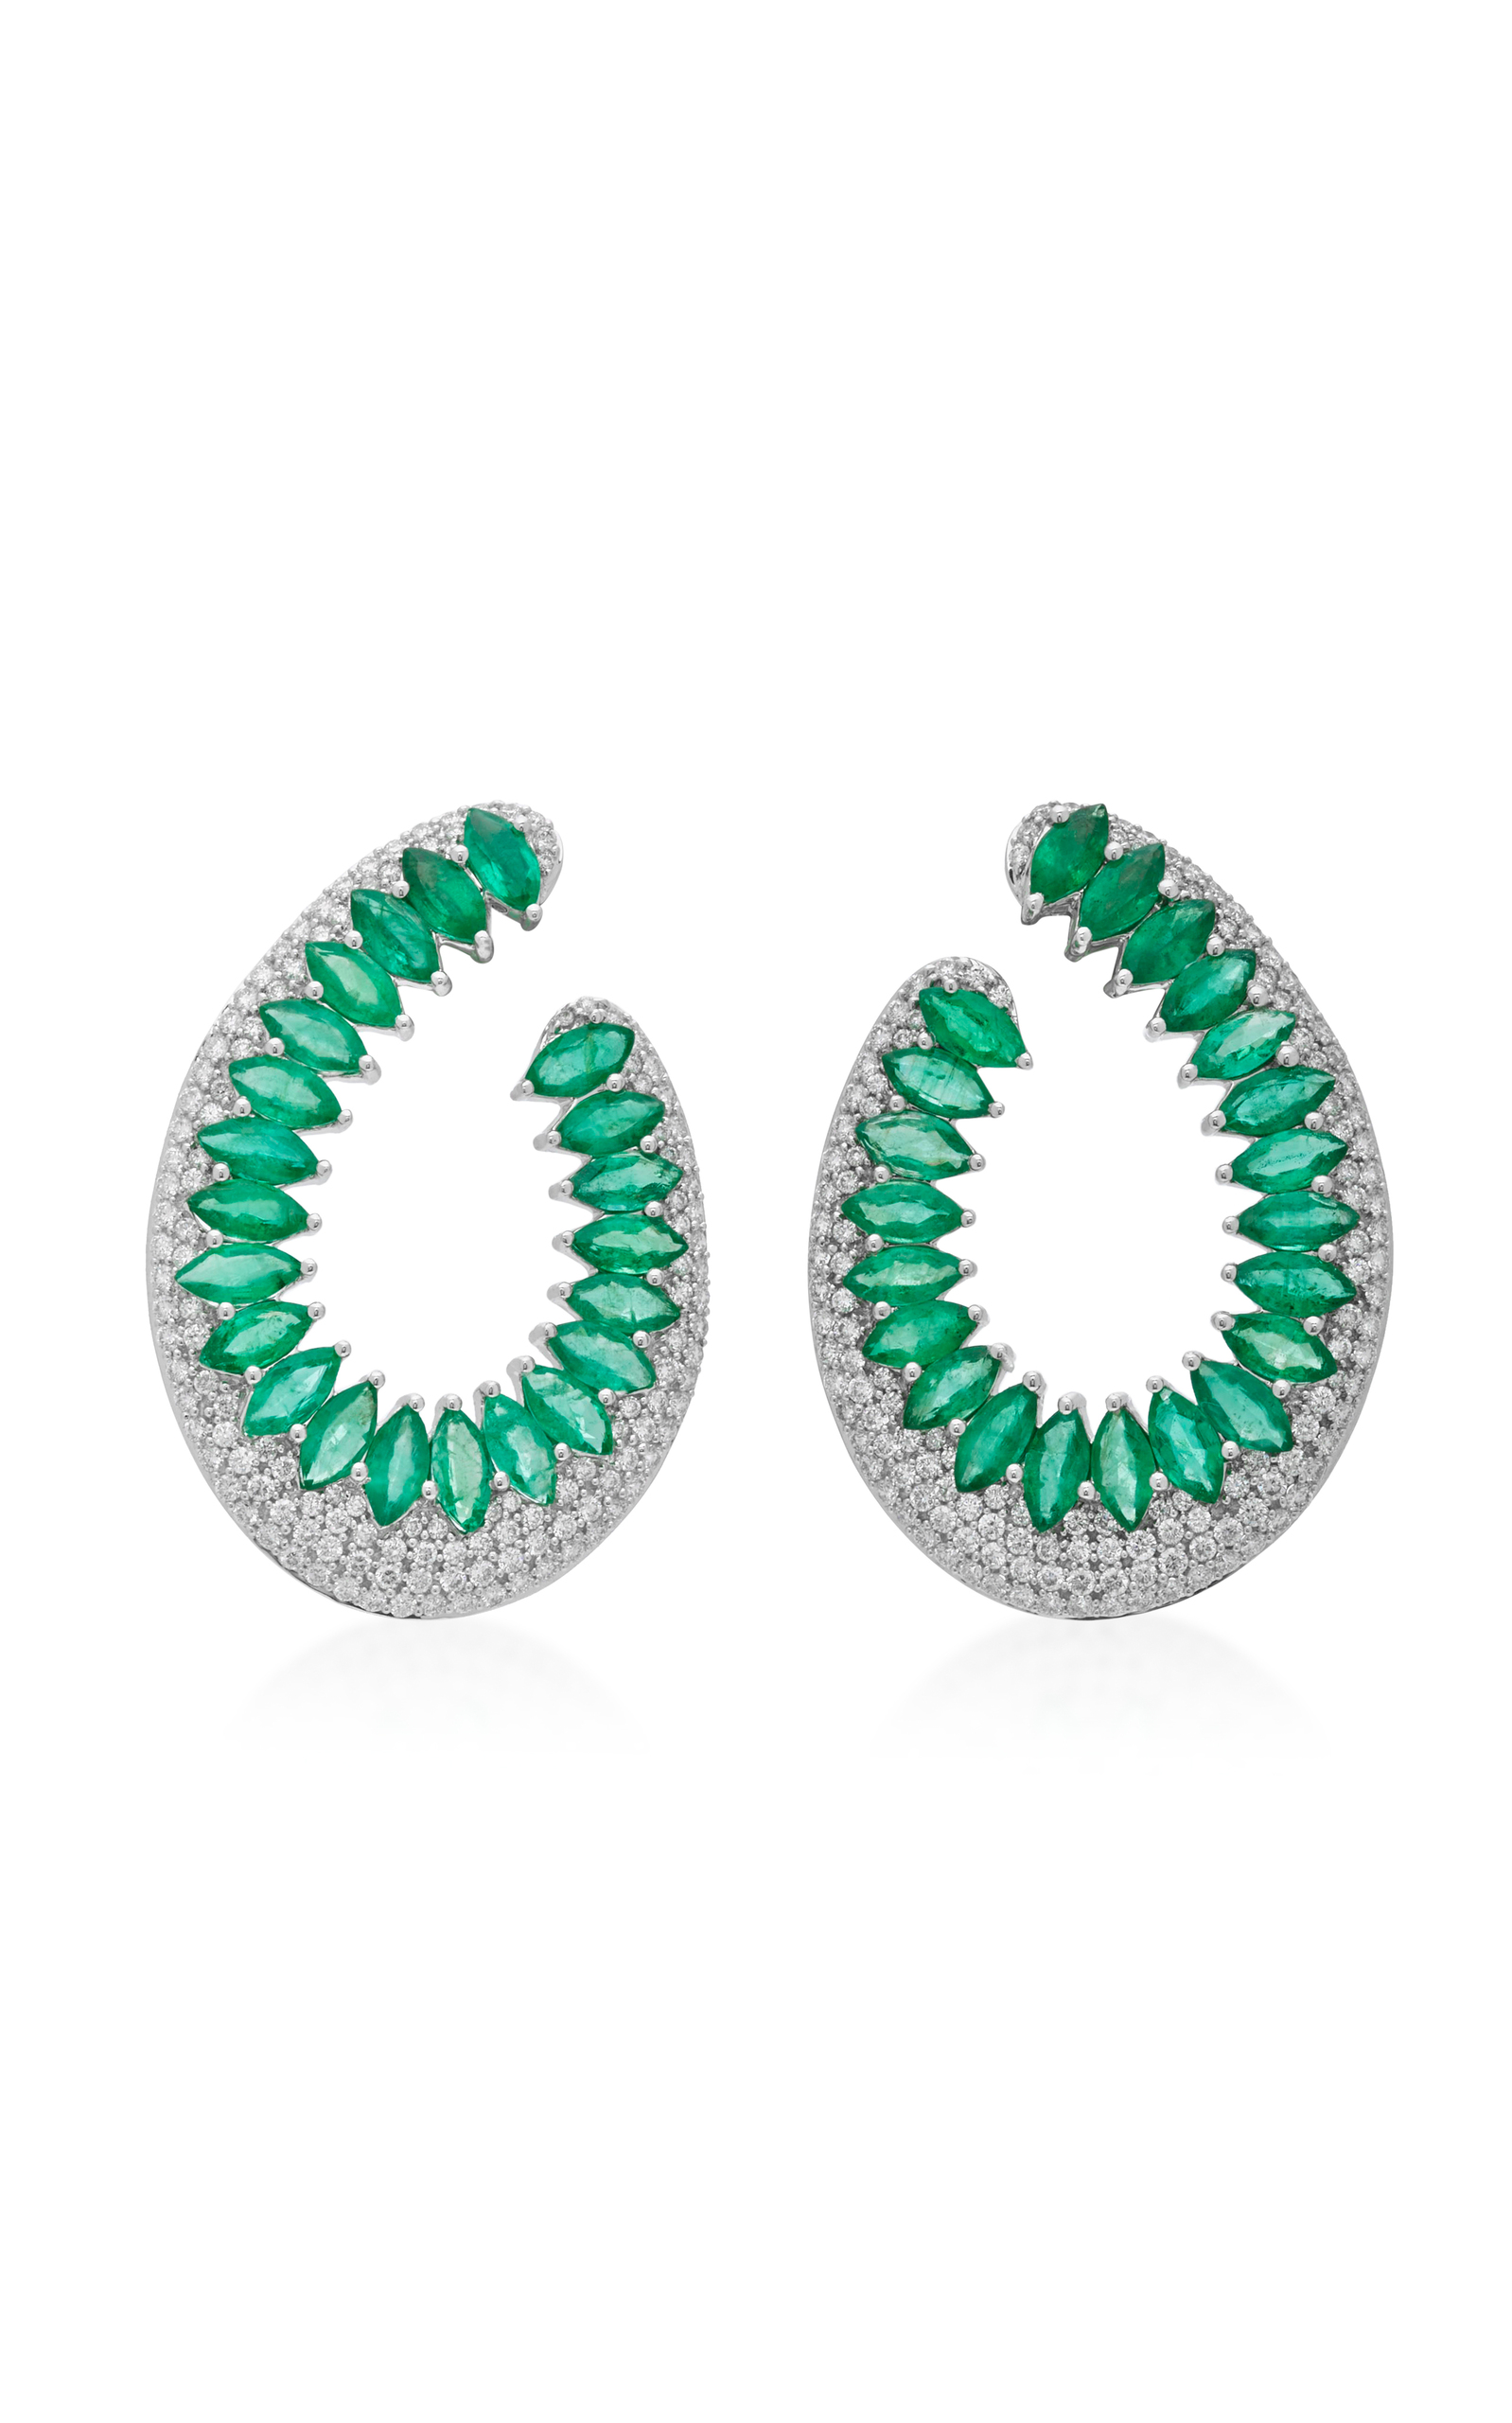 of graff pair featuring earrings collections cushion jewellery a diamond hooks and cut pave emerald emeralds with classic swan